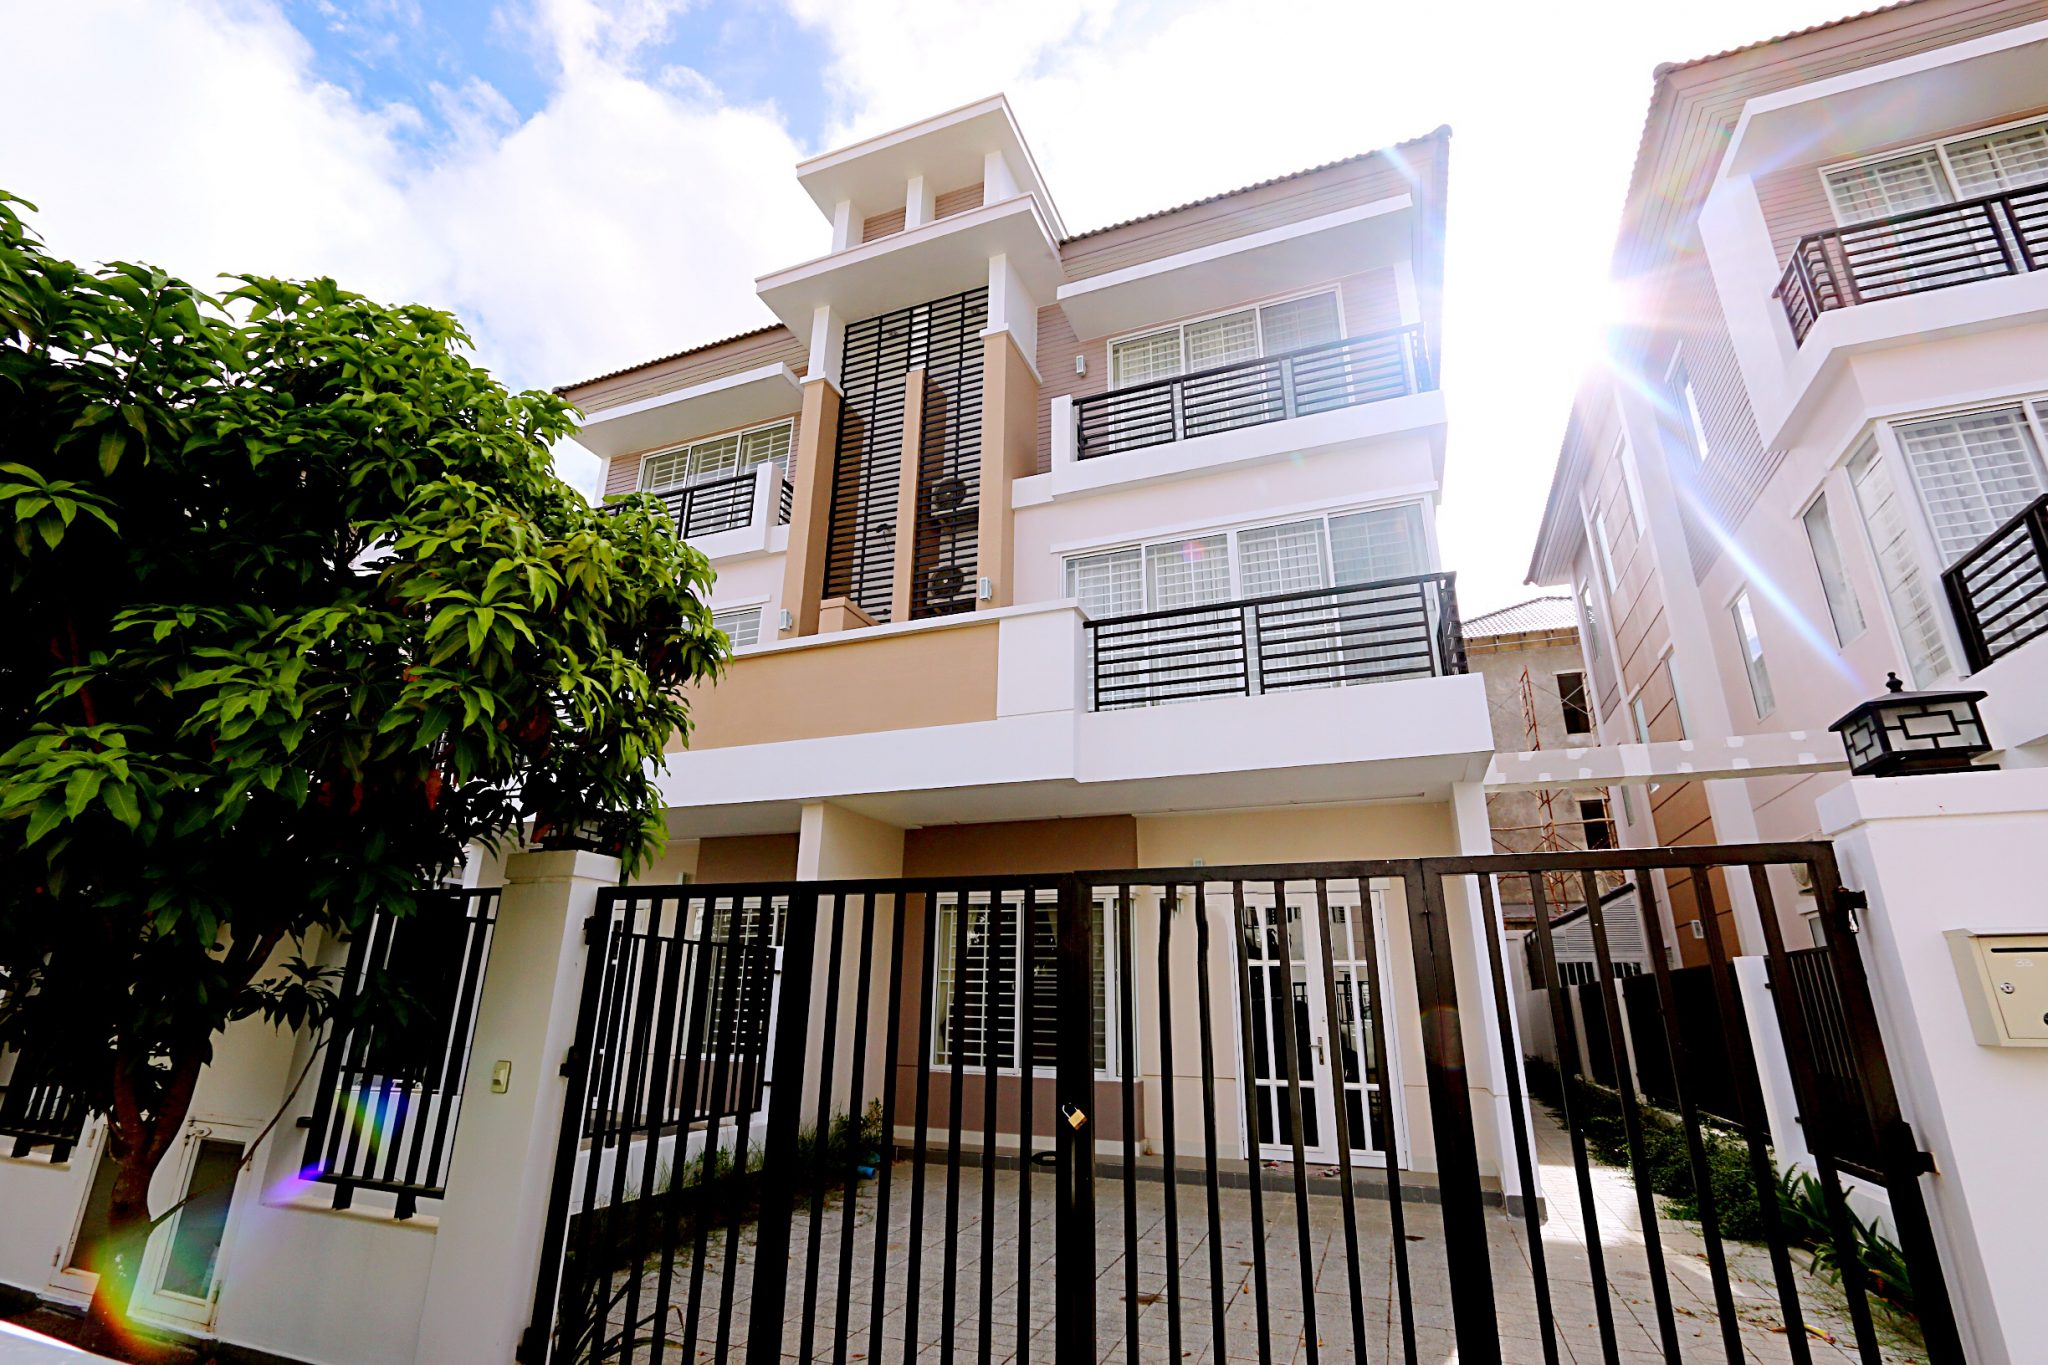 Phnom Penh | 4-Bedroom House @ Borey Peng Huoth, Chbar Ampov